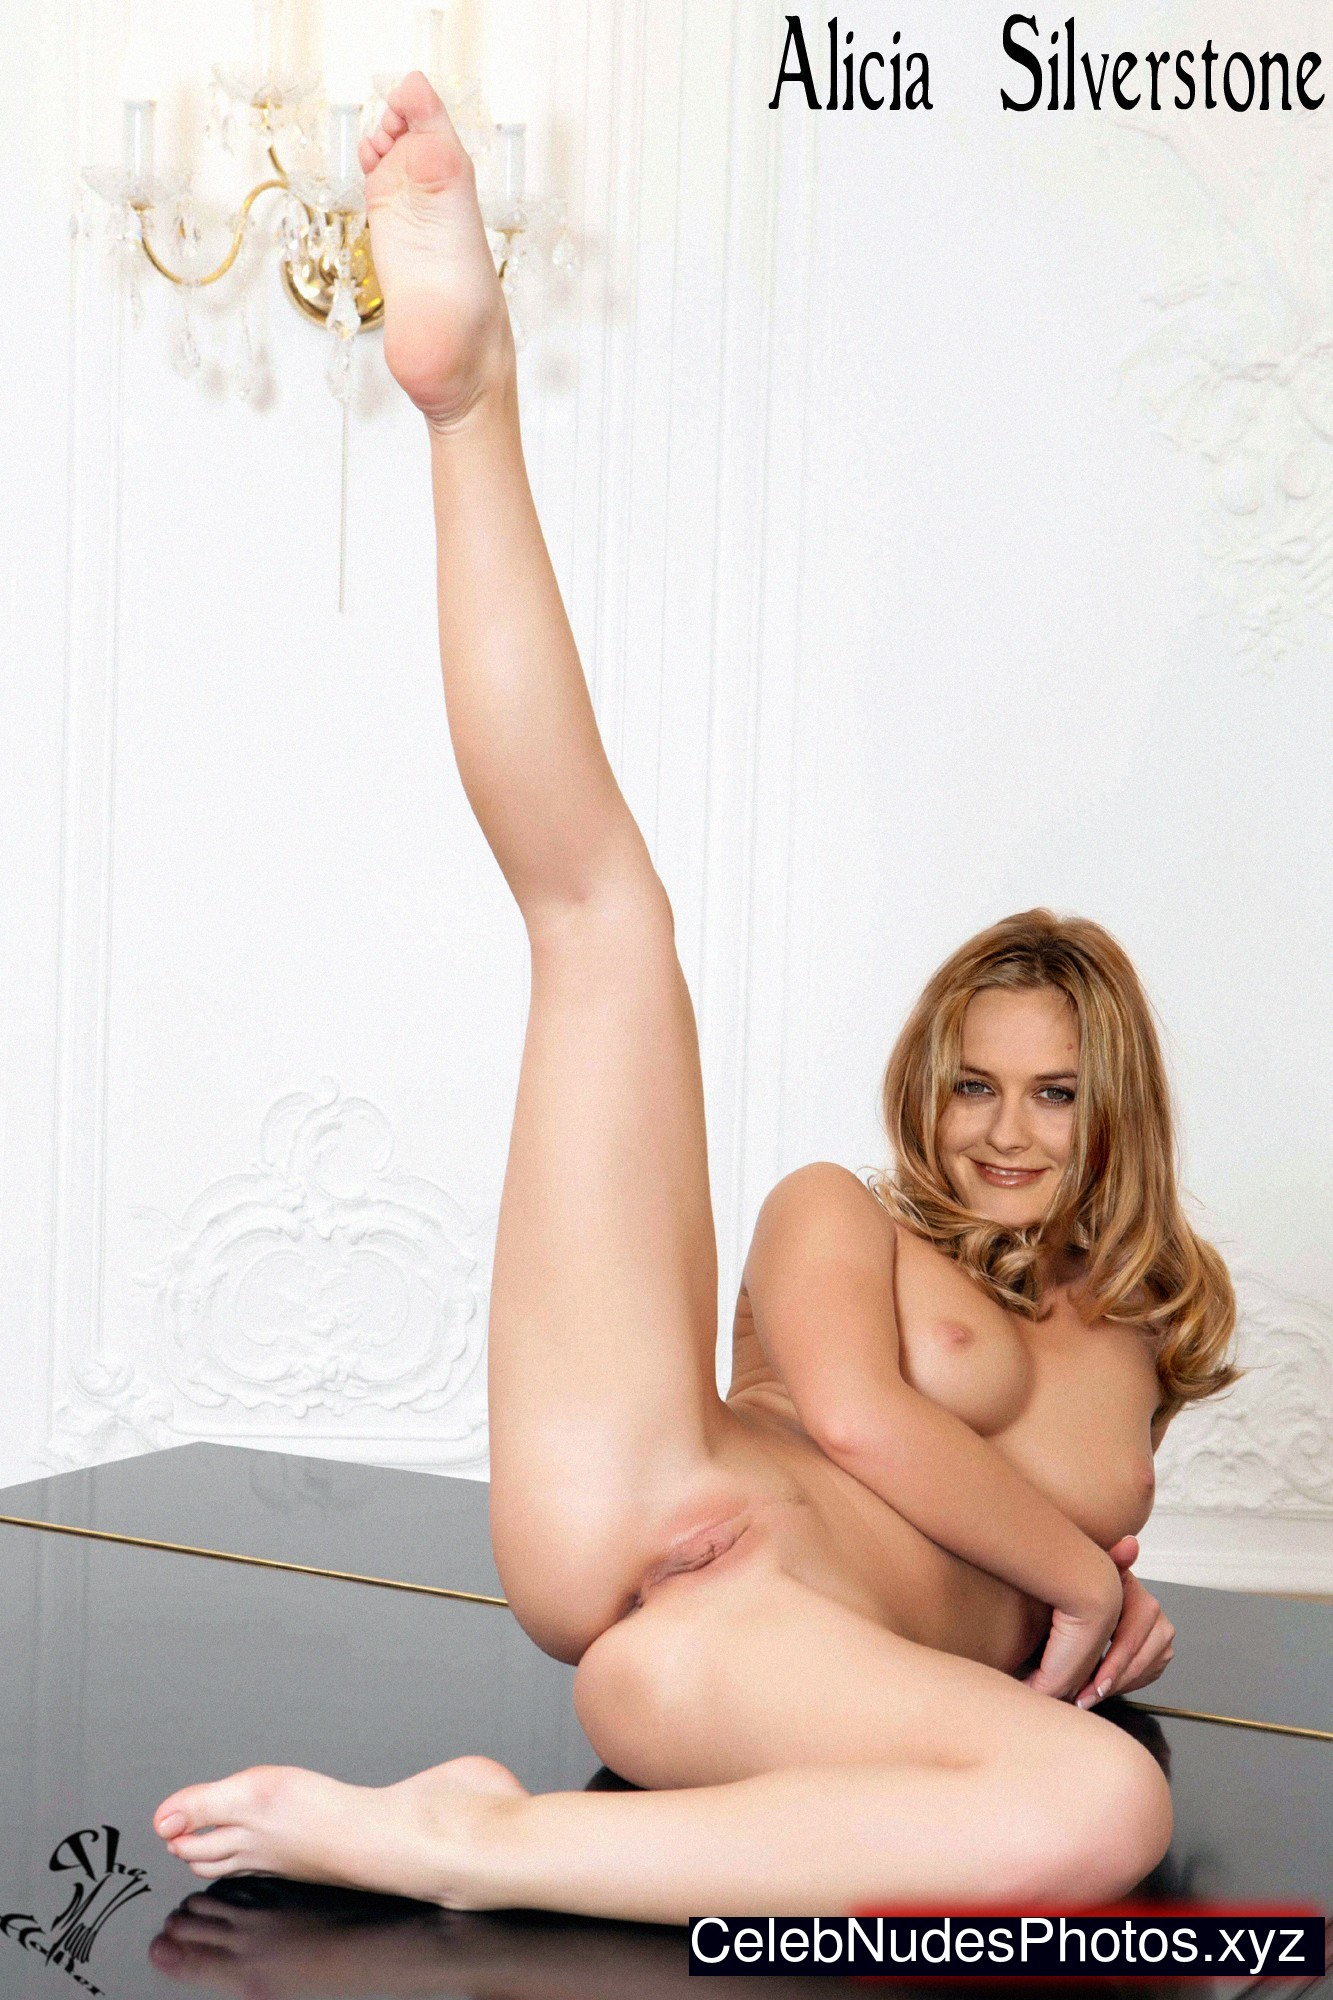 Alicia silverstone topless leaked